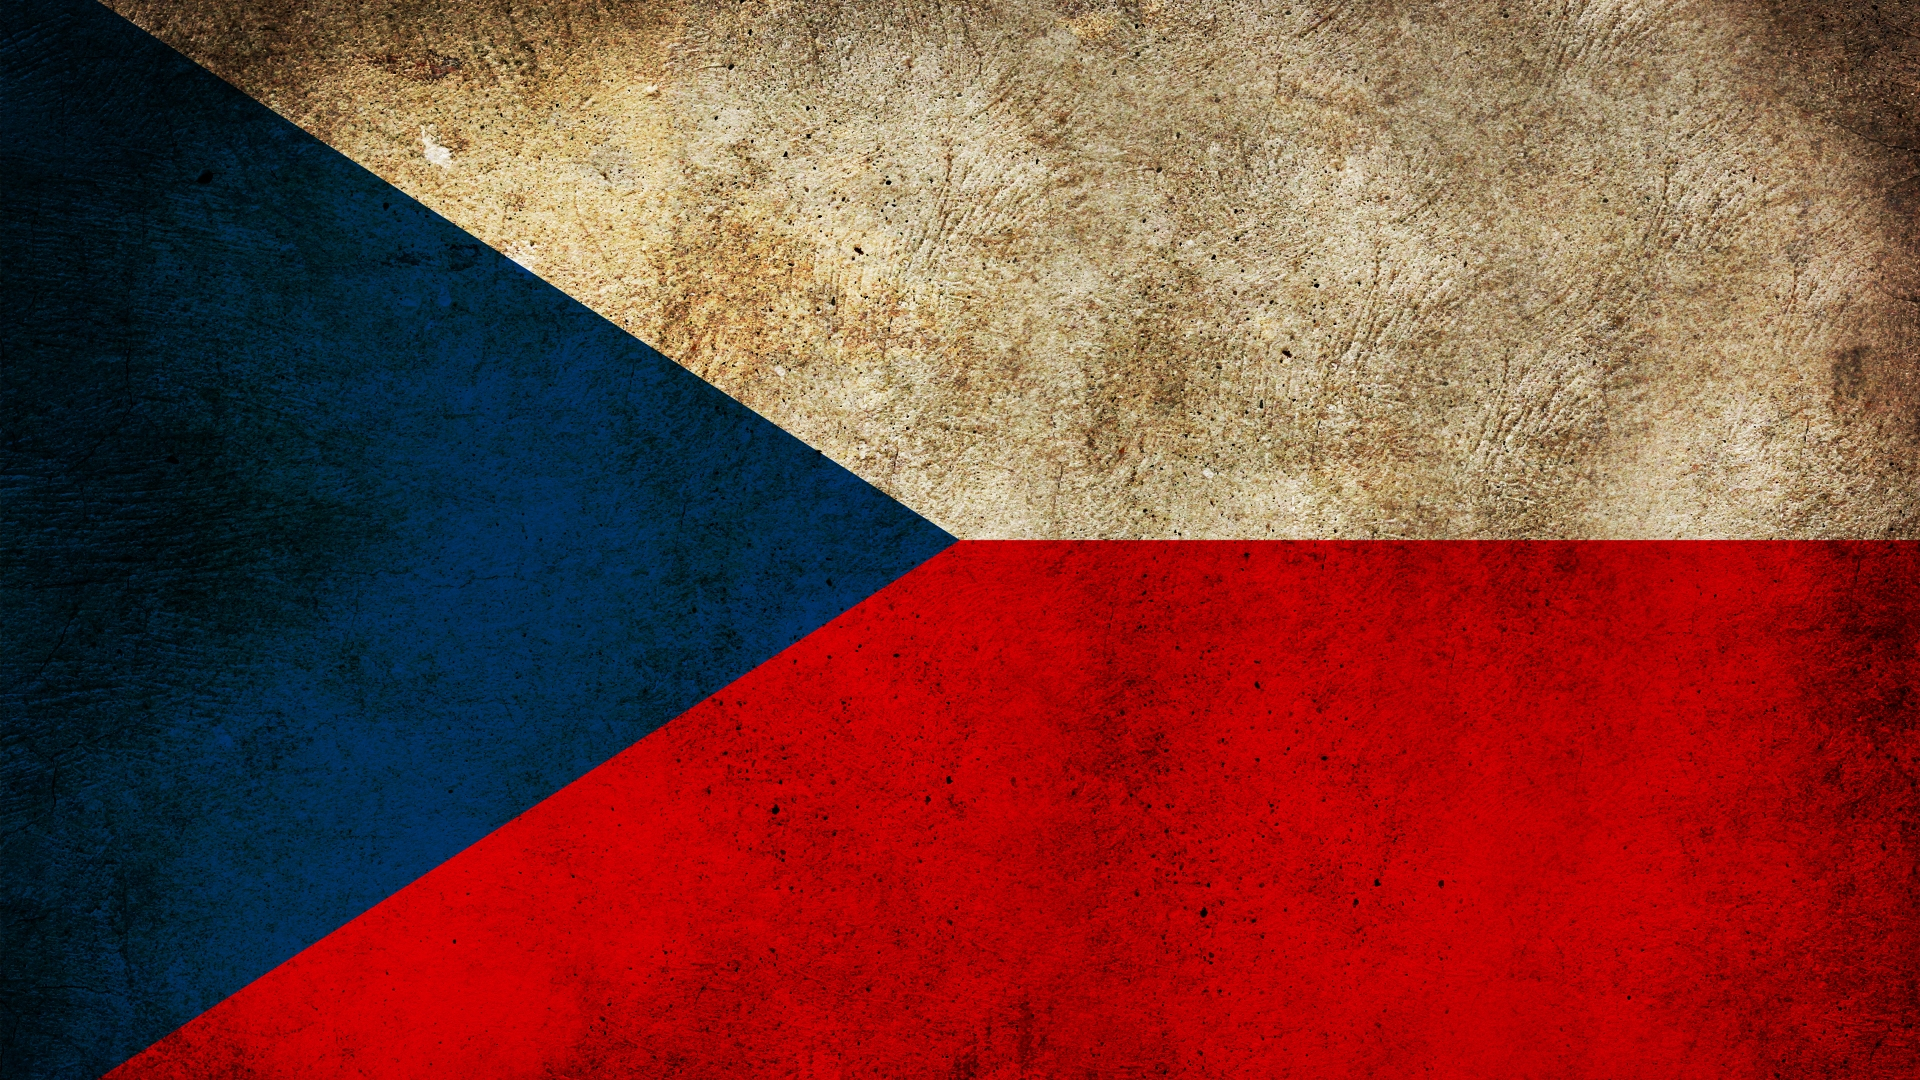 Czech Republic Flag wallpaper   HD Wallpapers 1920x1080